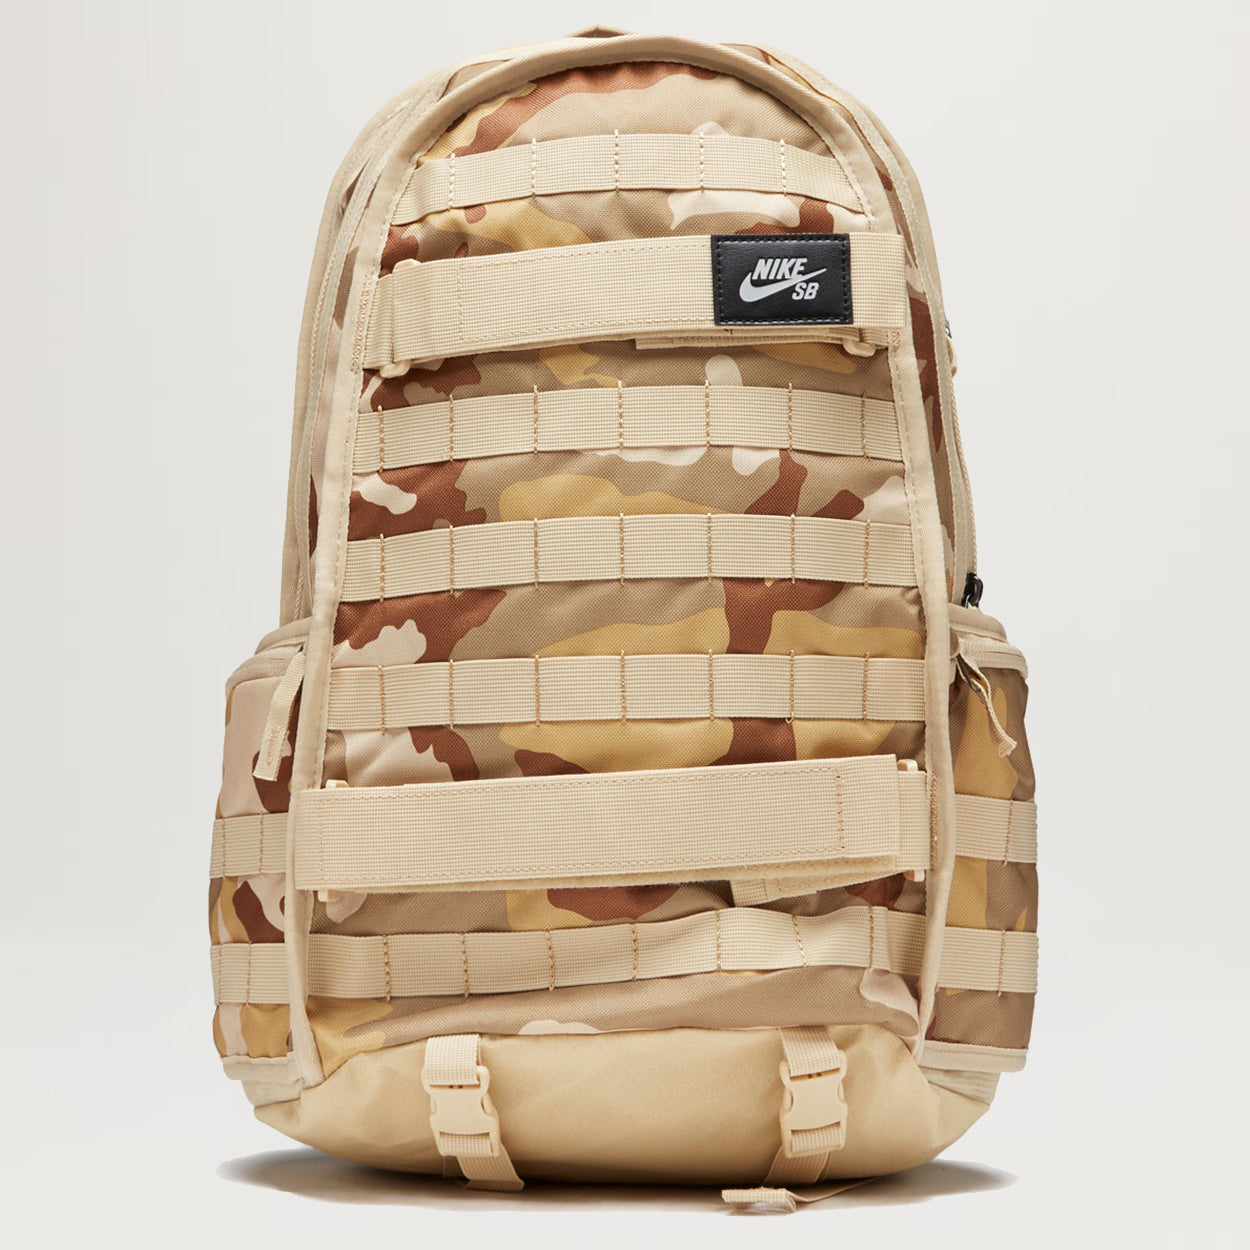 factory price united states classic styles Nike SB RPM Backpack (Desert Camo) $90.00